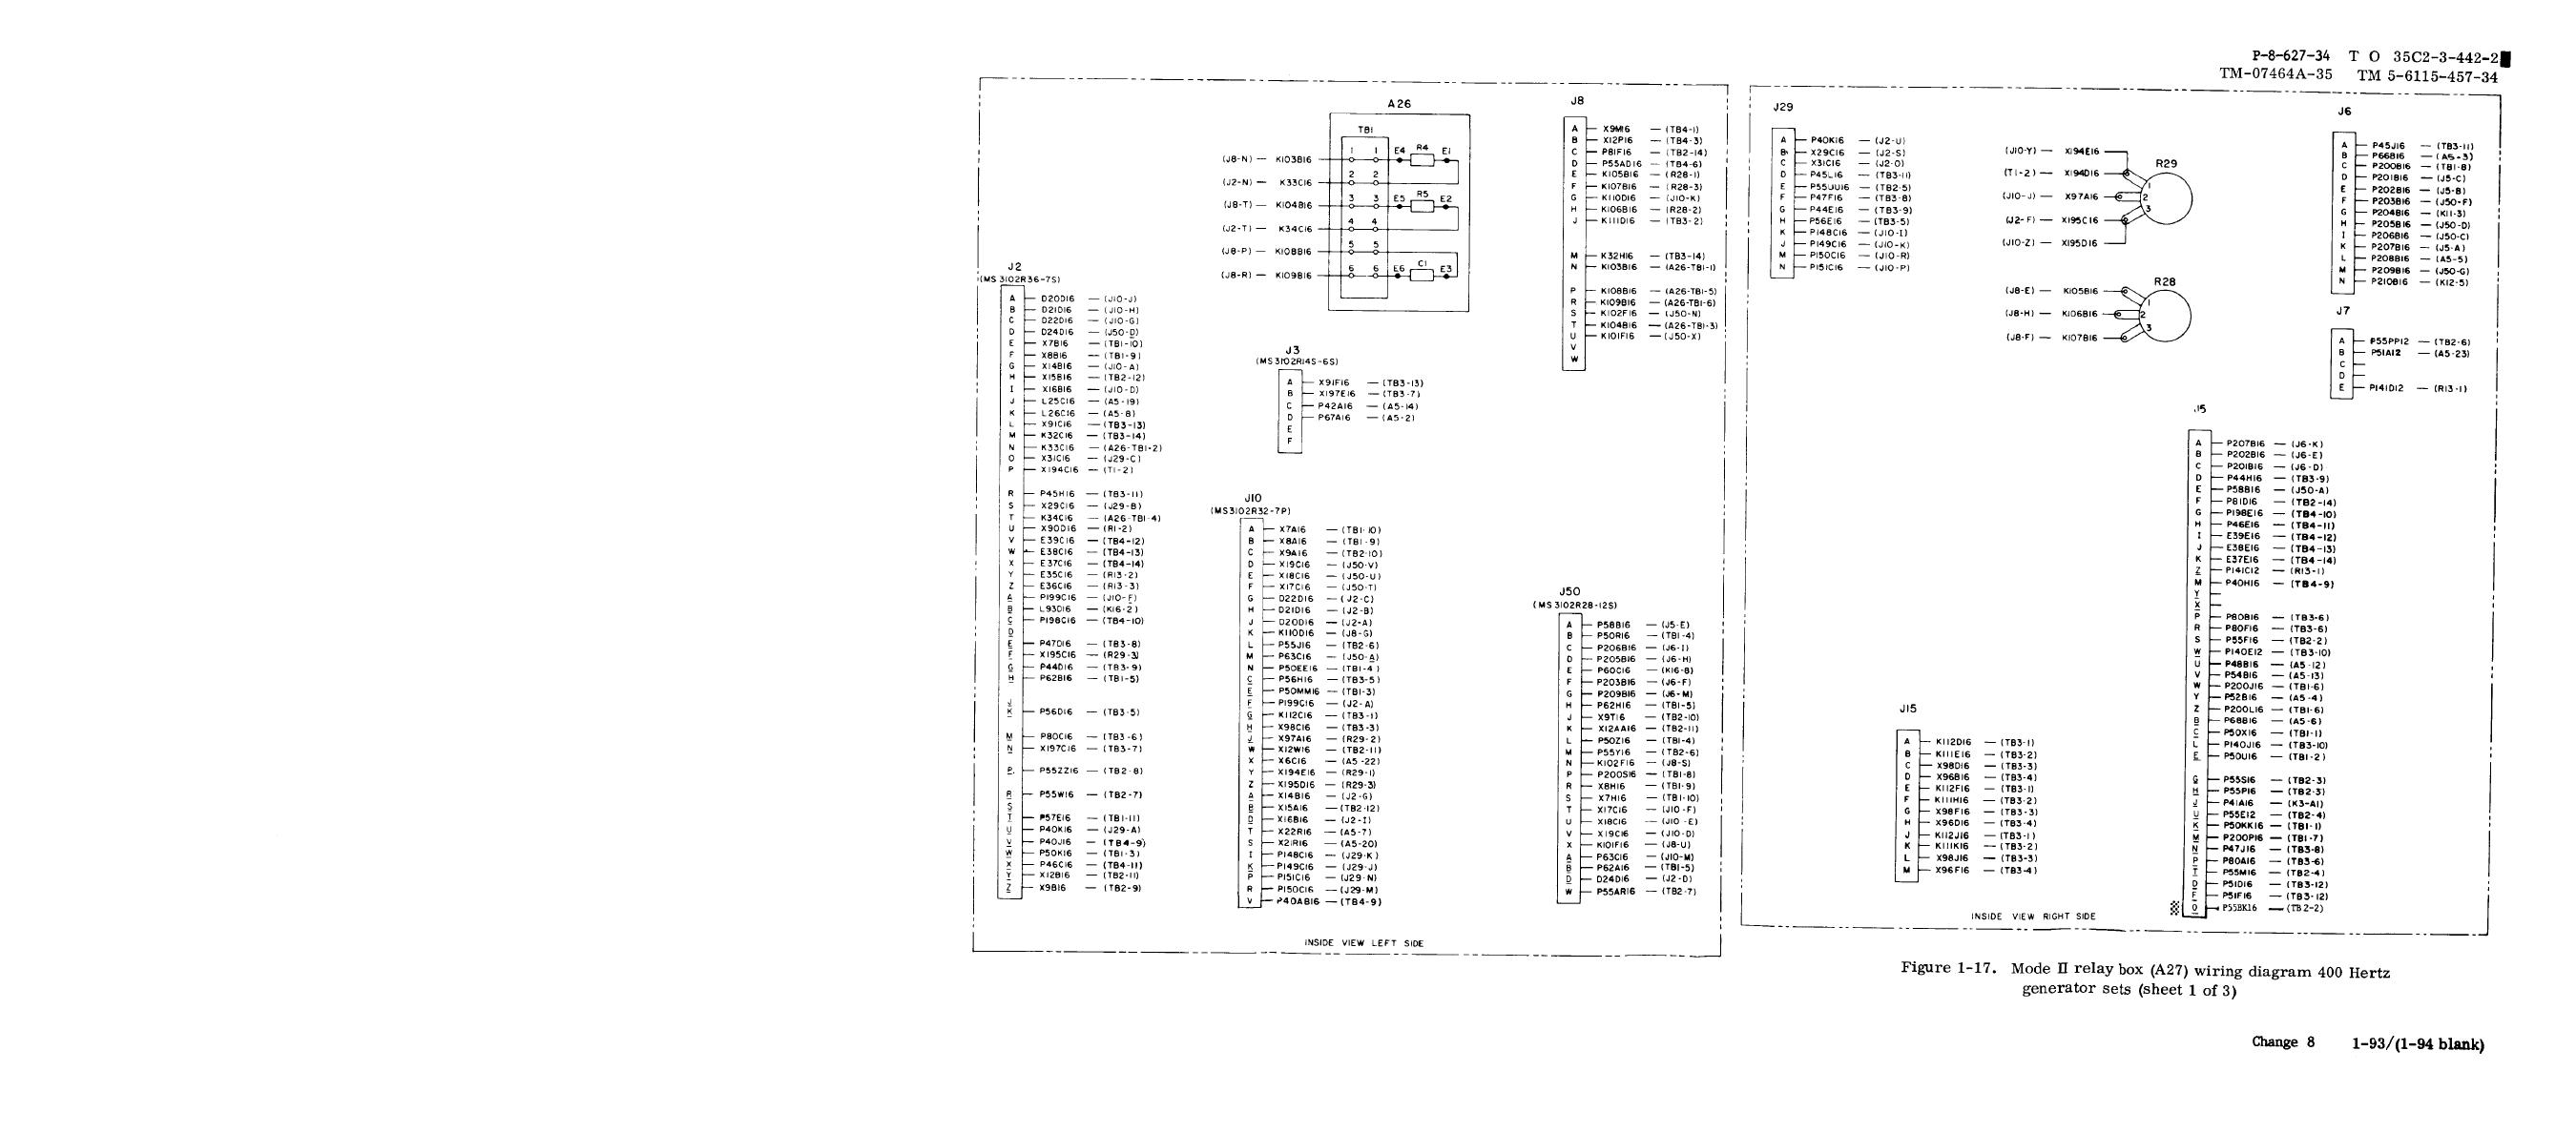 Figure 1-17. Mode II relay box (A27) wiring diagram 400